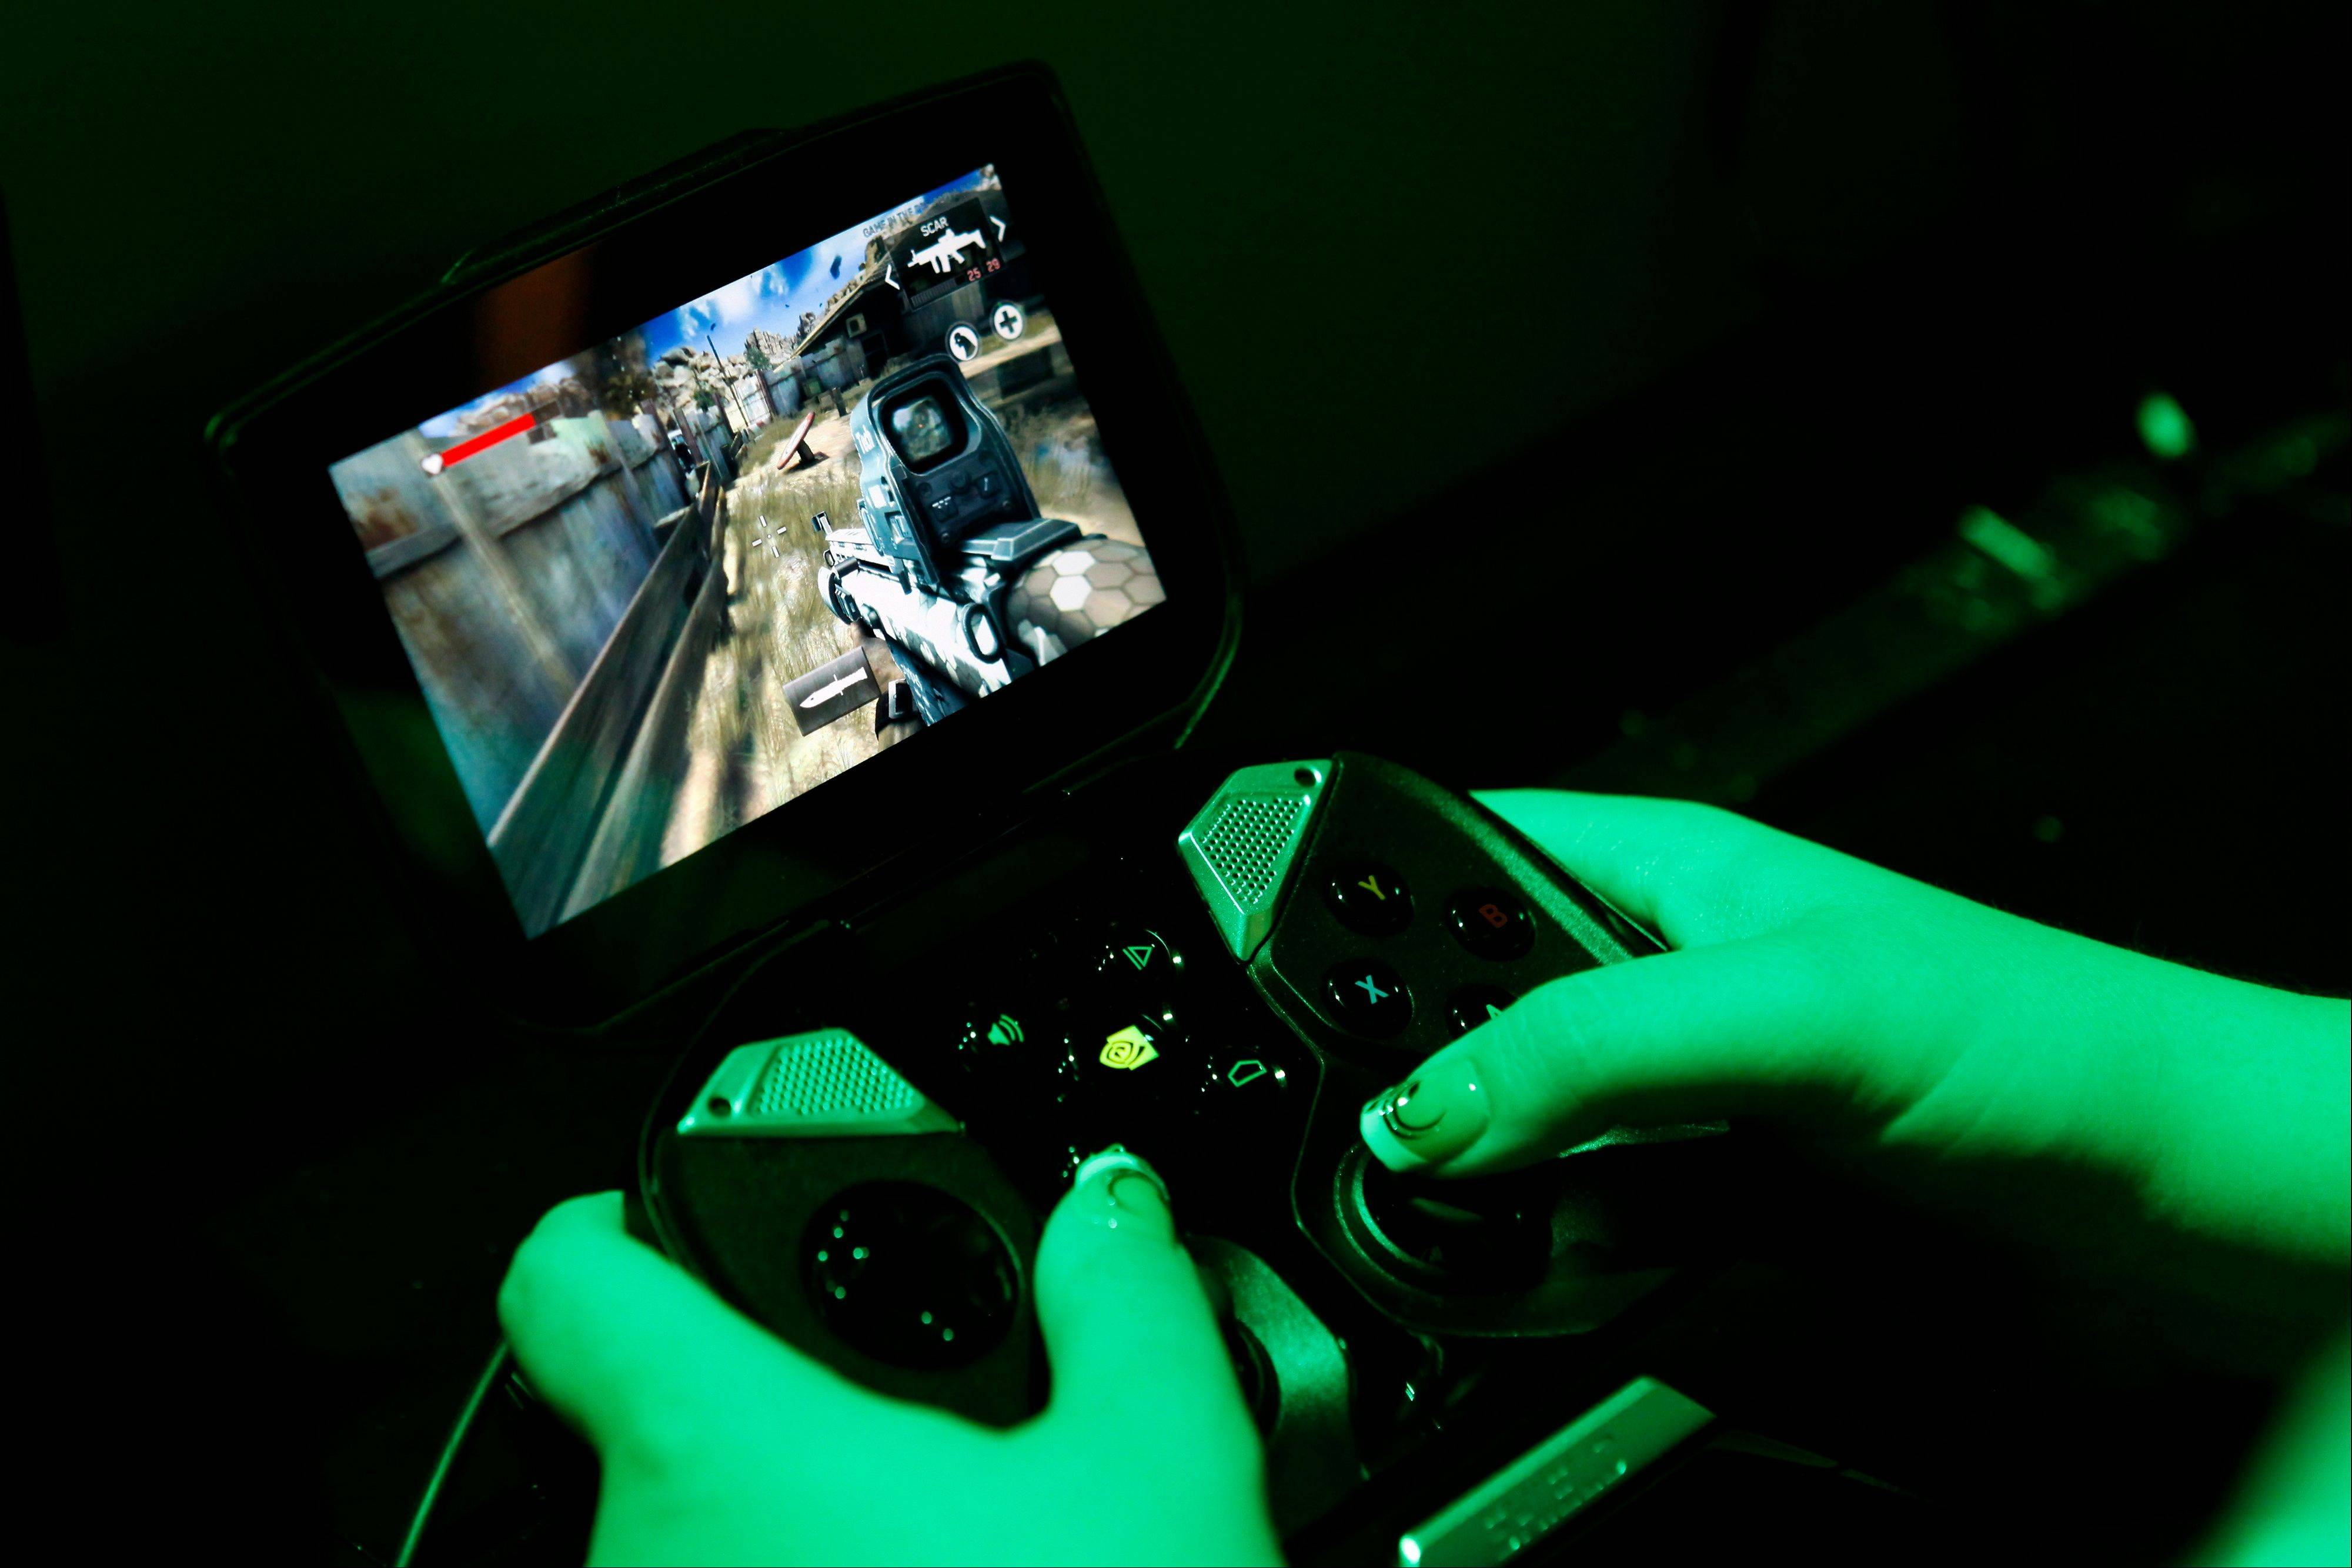 An attendee plays on Nvidia Corp.'s Nvidia Shield handheld game console at the company's booth during the E3 Electronic Entertainment Expo in Los Angeles, California, U.S., on Wednesday, June 12, 2013. E3, a trade show for computer and video games, draws professionals to experience the future of interactive entertainment as well as to see new technologies and never-before-seen products.